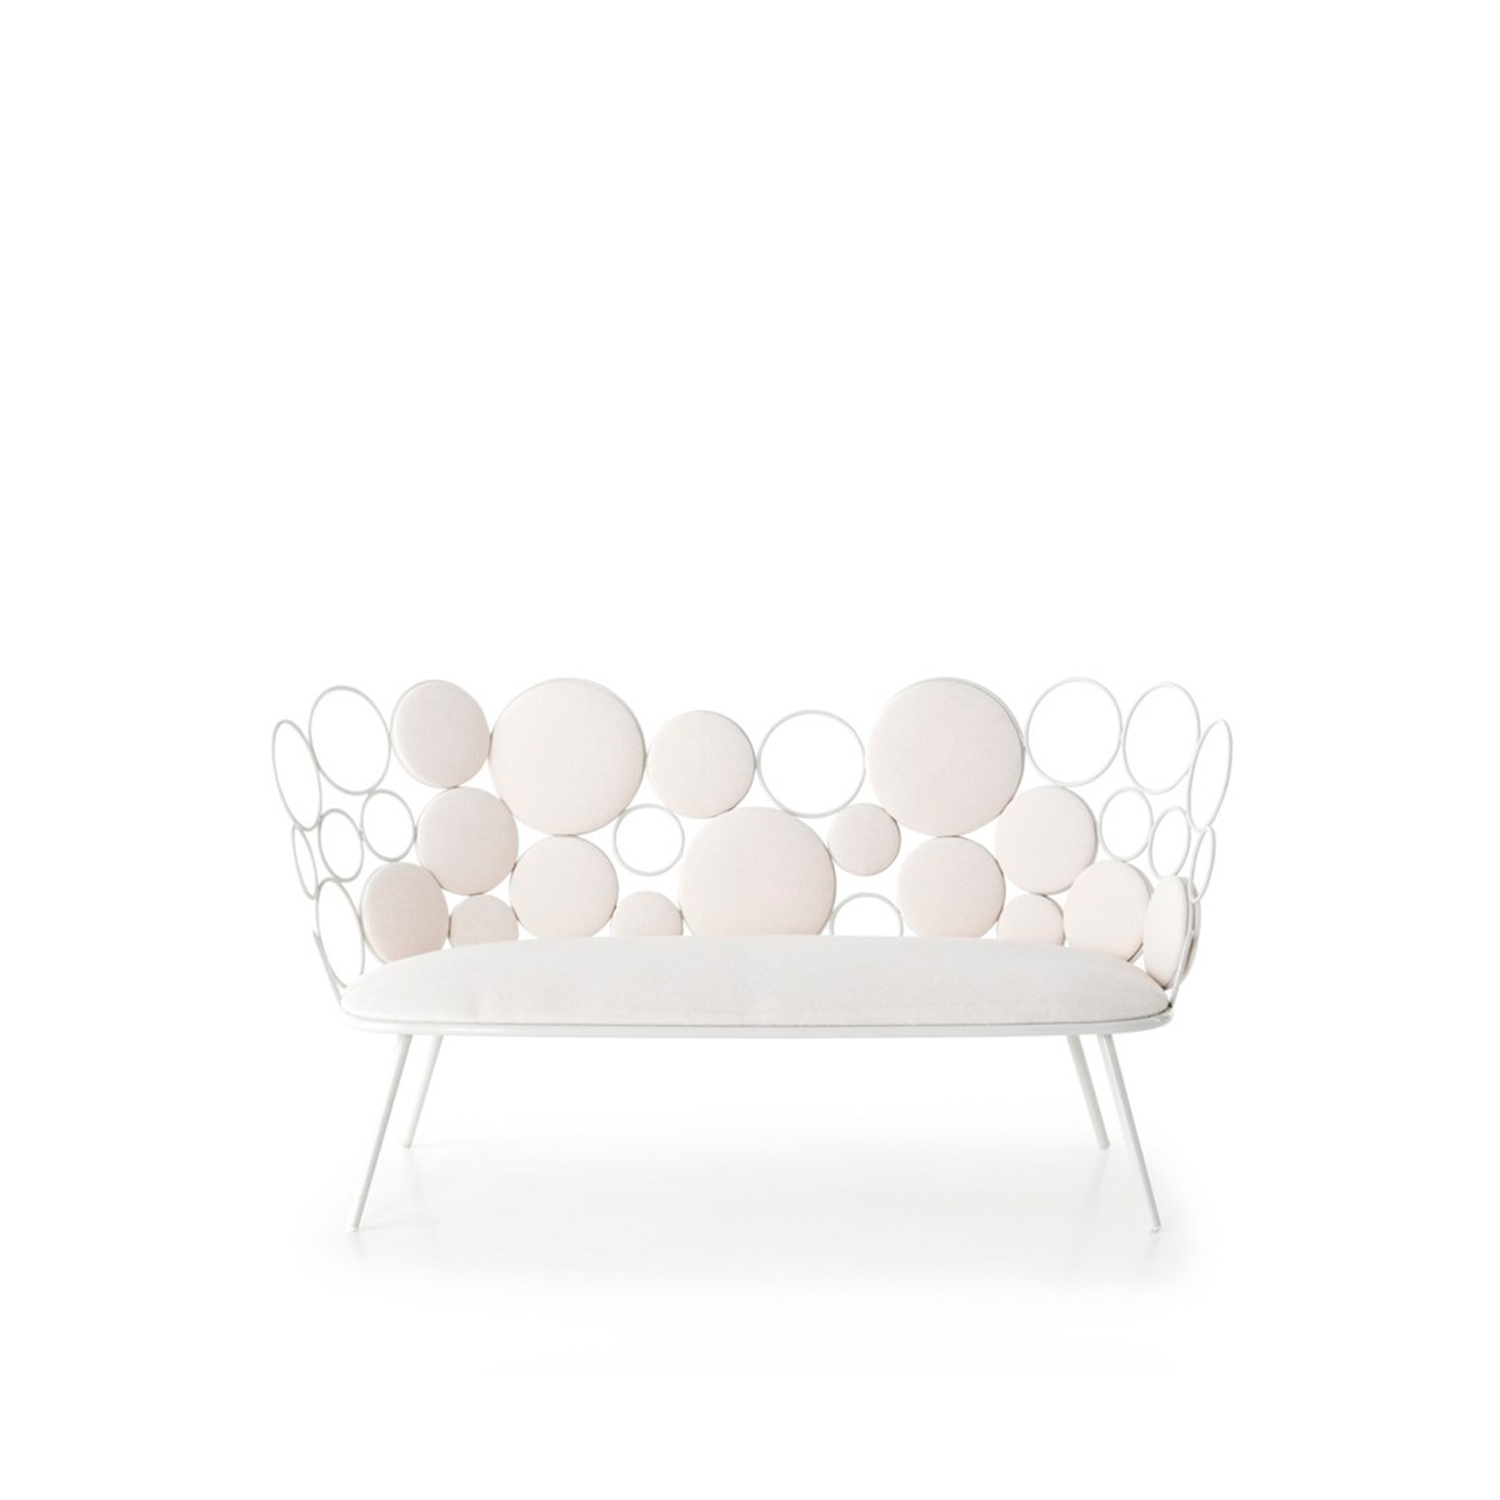 Grace Garden Sofa - Grace is a fabric and iron garden sofa, part of the homonymous collection.  Our new outdoor collection by Paolo Grasselli is an irresistibly dainty decorative range.  Geometric patterns materialise and metal lines trace circles through the air in an artistic élan that is much more deliberate than first seems.  Metal rings of differing sizes breathe life into a seating collection and accessories where practicality and beauty become one. Empty circles clasp cushioned spheres in a cluster of coloured and transparent bubbles, settling down magnificently into a tub chair, a loveseat, a low table and a pouf. Nascent forms spring up where the concept of a chair has been torn apart and made whole again; yet this time, the distinction between space and matter and object and surrounds has become blurred. Depending on the arrangement of the rings and the positioning of the cushions, different harmonious patterns can be created - the end result will always be strikingly decorative and surprisingly comfortable.    Materials :  Coated outdoor structure with spheres in ø 8 mm solid iron rod, ø 18 mm tubular base, available either in white or grey.  Padded spheres made in Finnish spruce and a seat cushion in contoured rubber are available in a vast array of upholstery suitable for outdoors. Should the furniture be destined for indoors, the choice of upholstery fabrics includes the home collection.  | Matter of Stuff